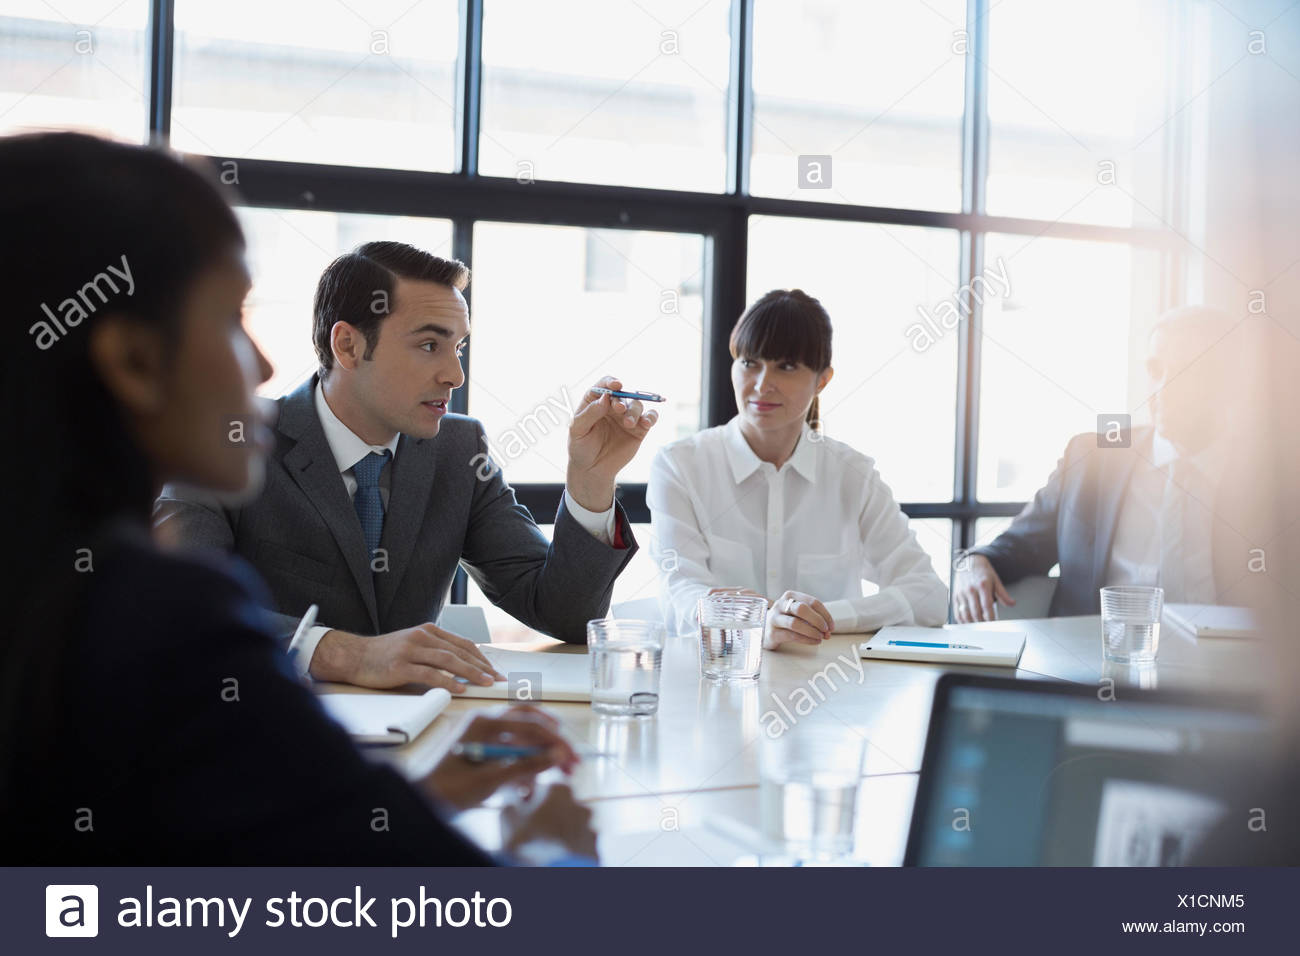 Businessman gesturing and explaining in conference room meeting - Stock Image